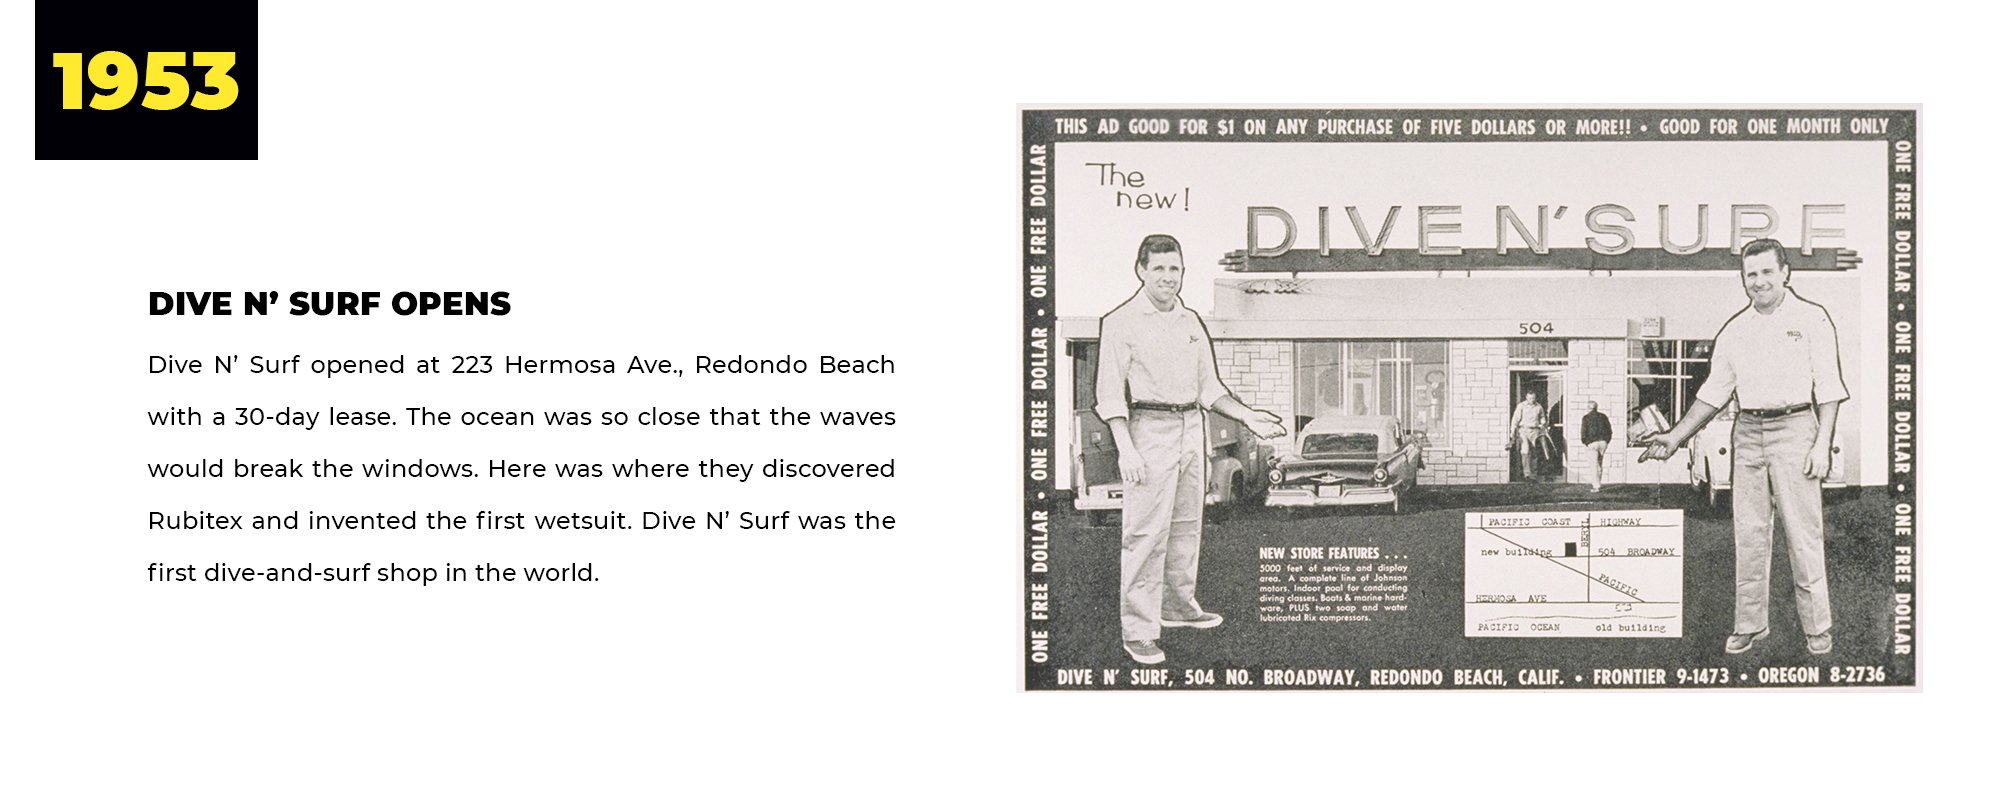 1953 | Dive N' Surf Opens | Dive N' Surf opened at 223 Hermosa Ave., Redondo Beach with a 30-day lease. The ocean was so close that the waves would break the windows. Here was where they discovered Rubitex and invented the first wetsuit. Dive N' Surf was the first dive-and-surf shop in the world.